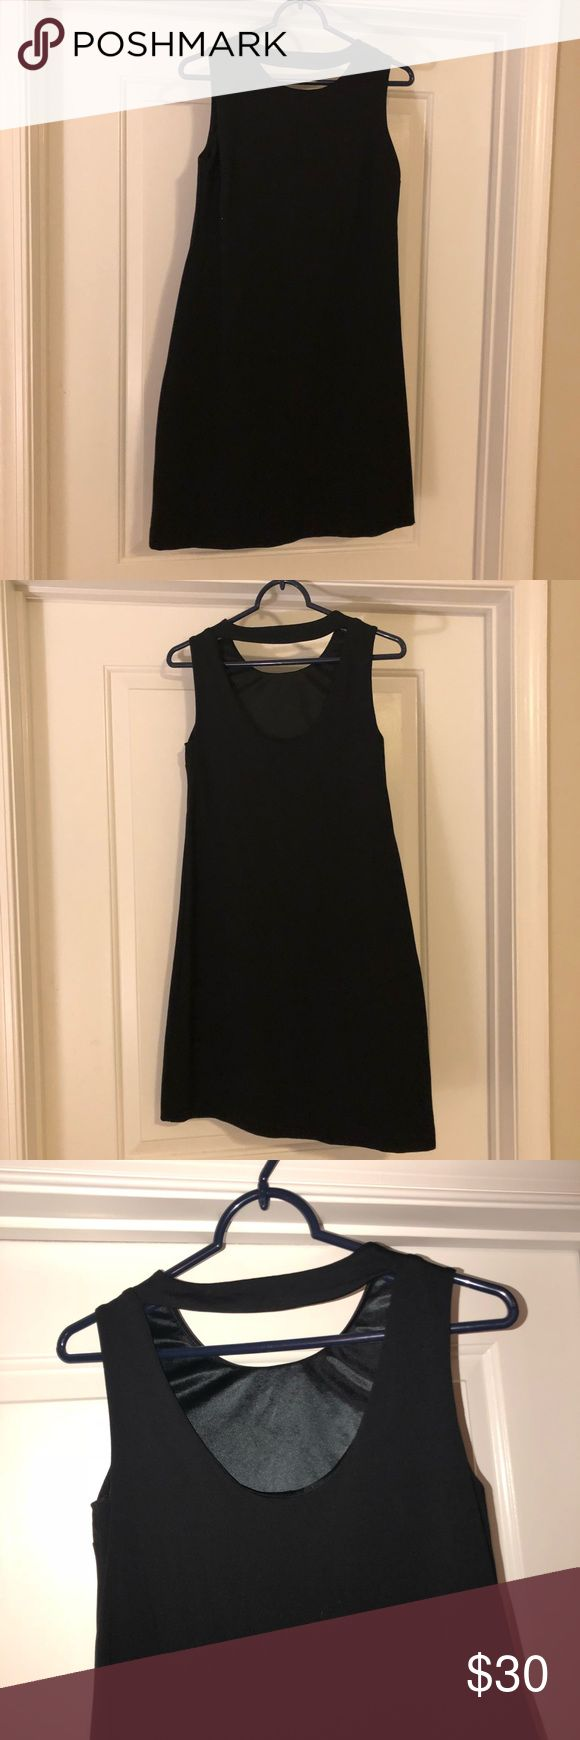 Black shift dress 👗 Black shift dress with a small open back! Cynthia Rowley Dresses